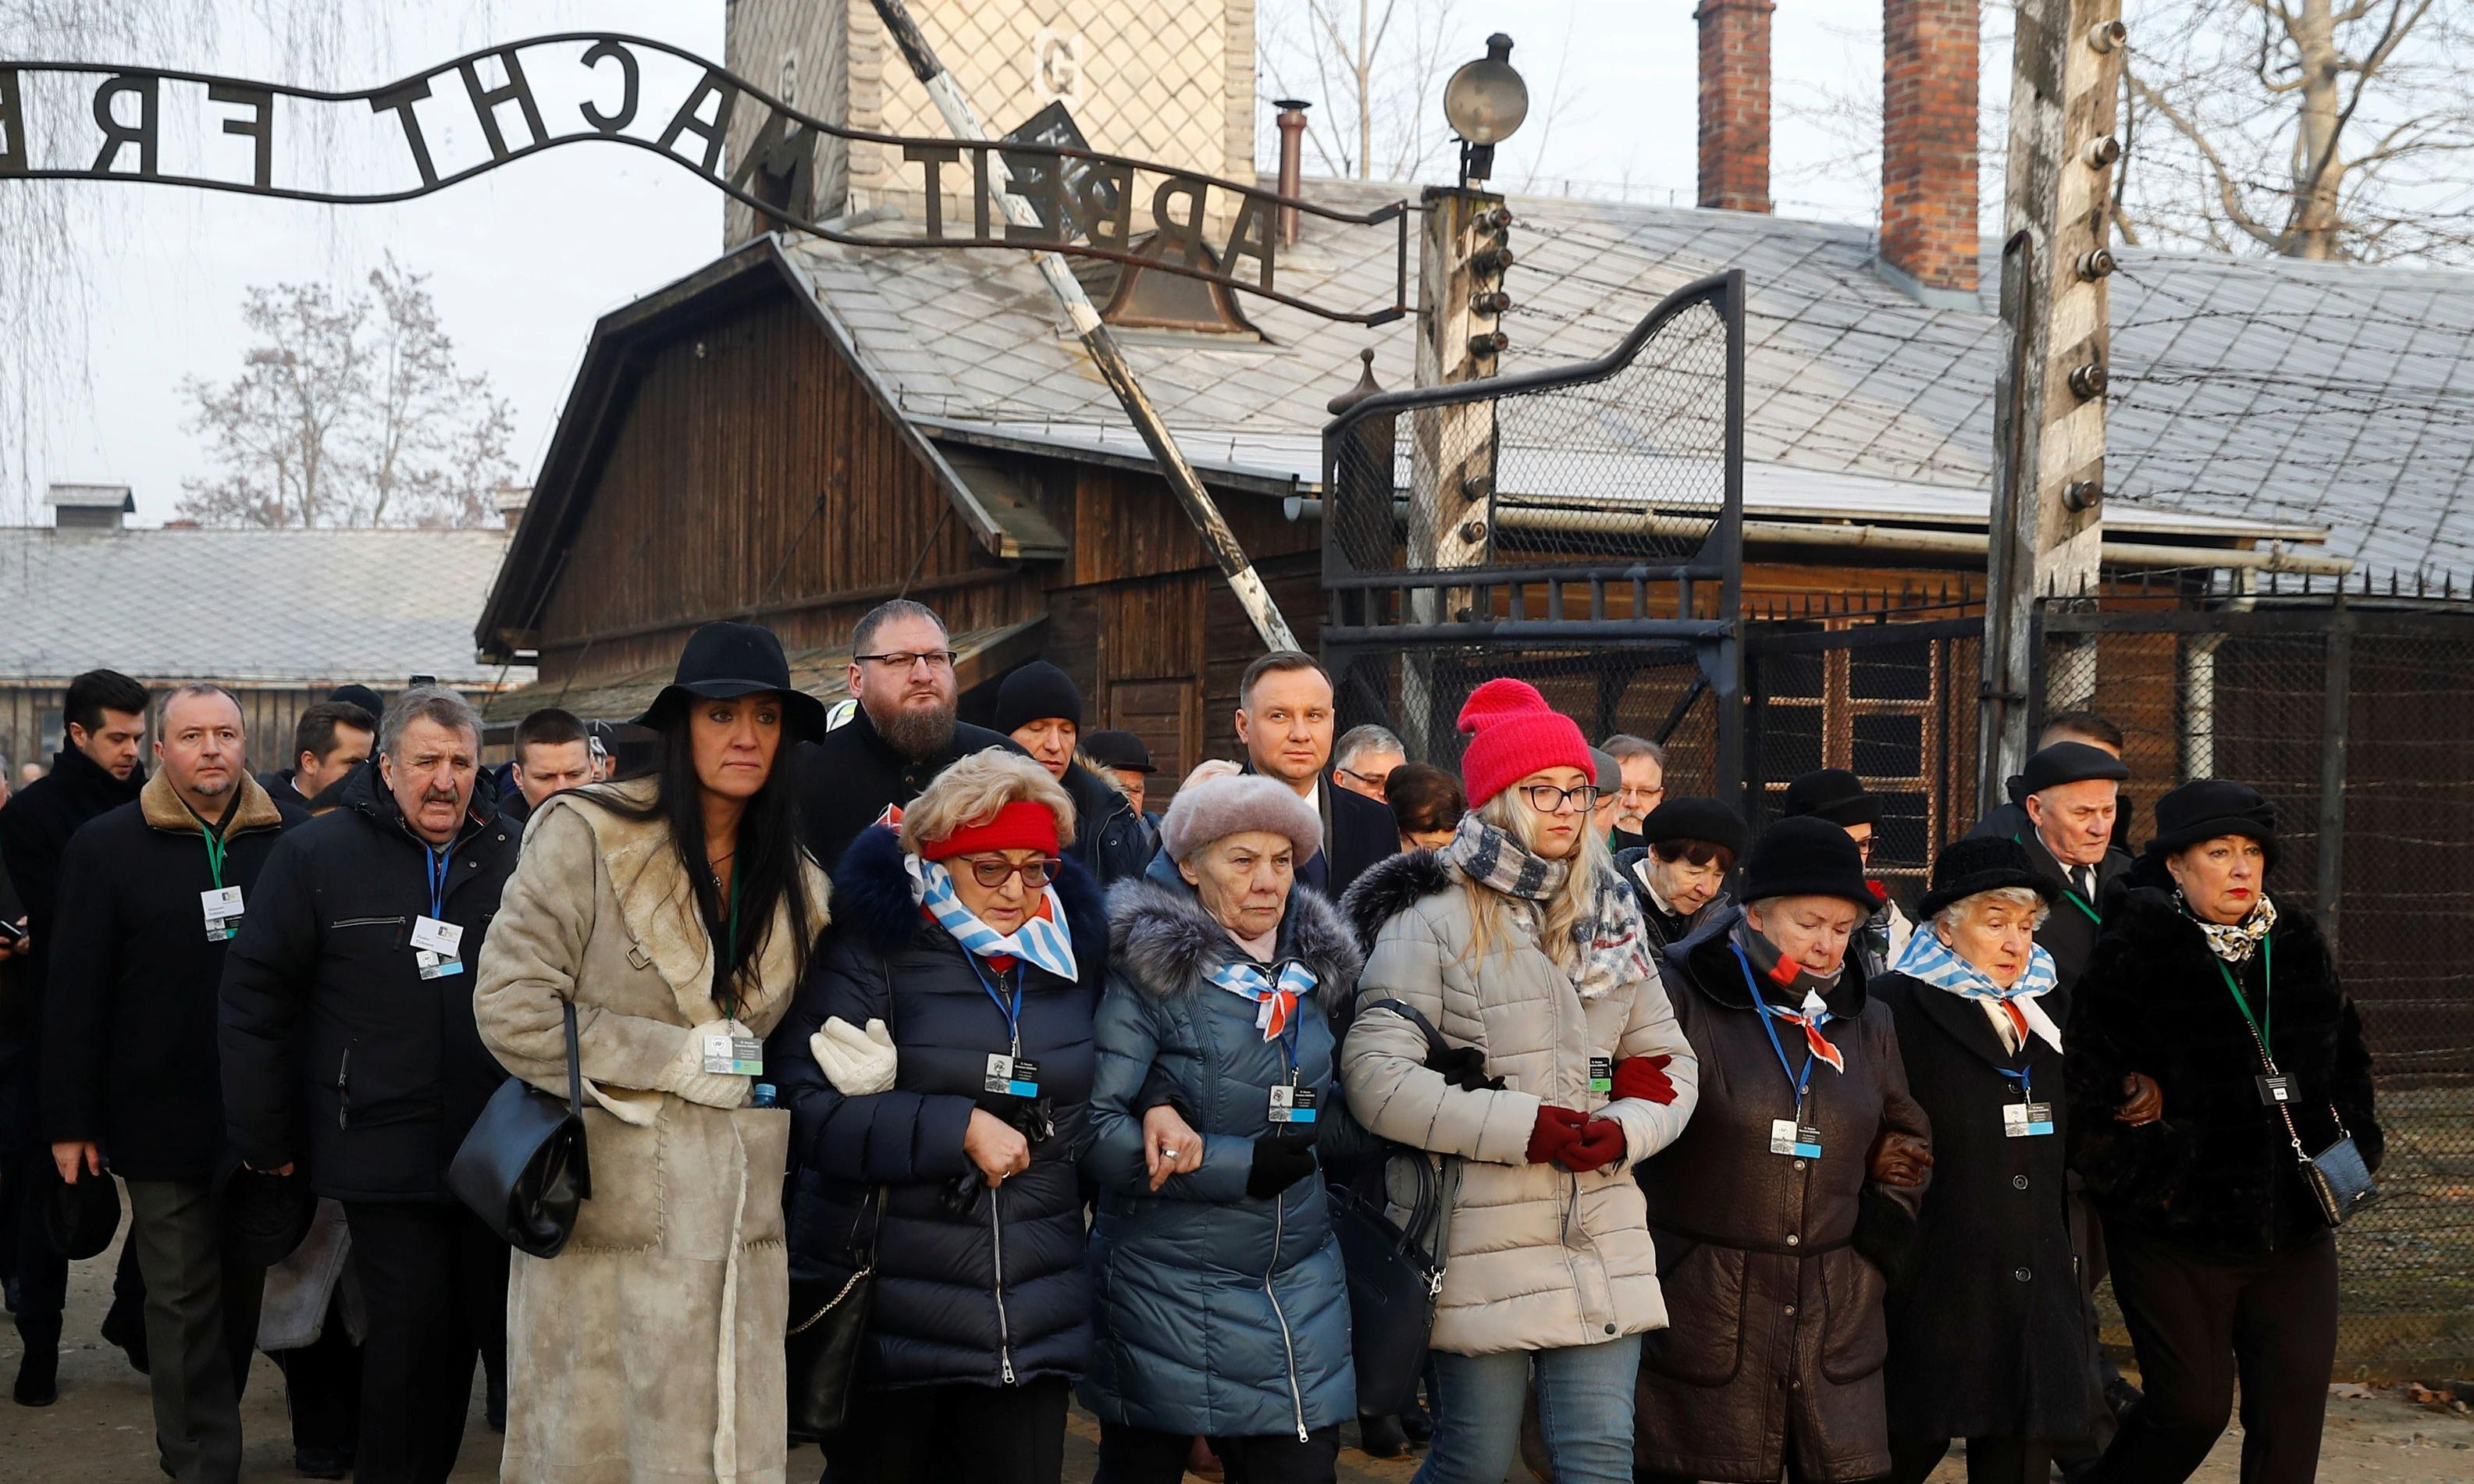 'Thou shalt not be indifferent': from Auschwitz's gate of hell, a last, desperate warning